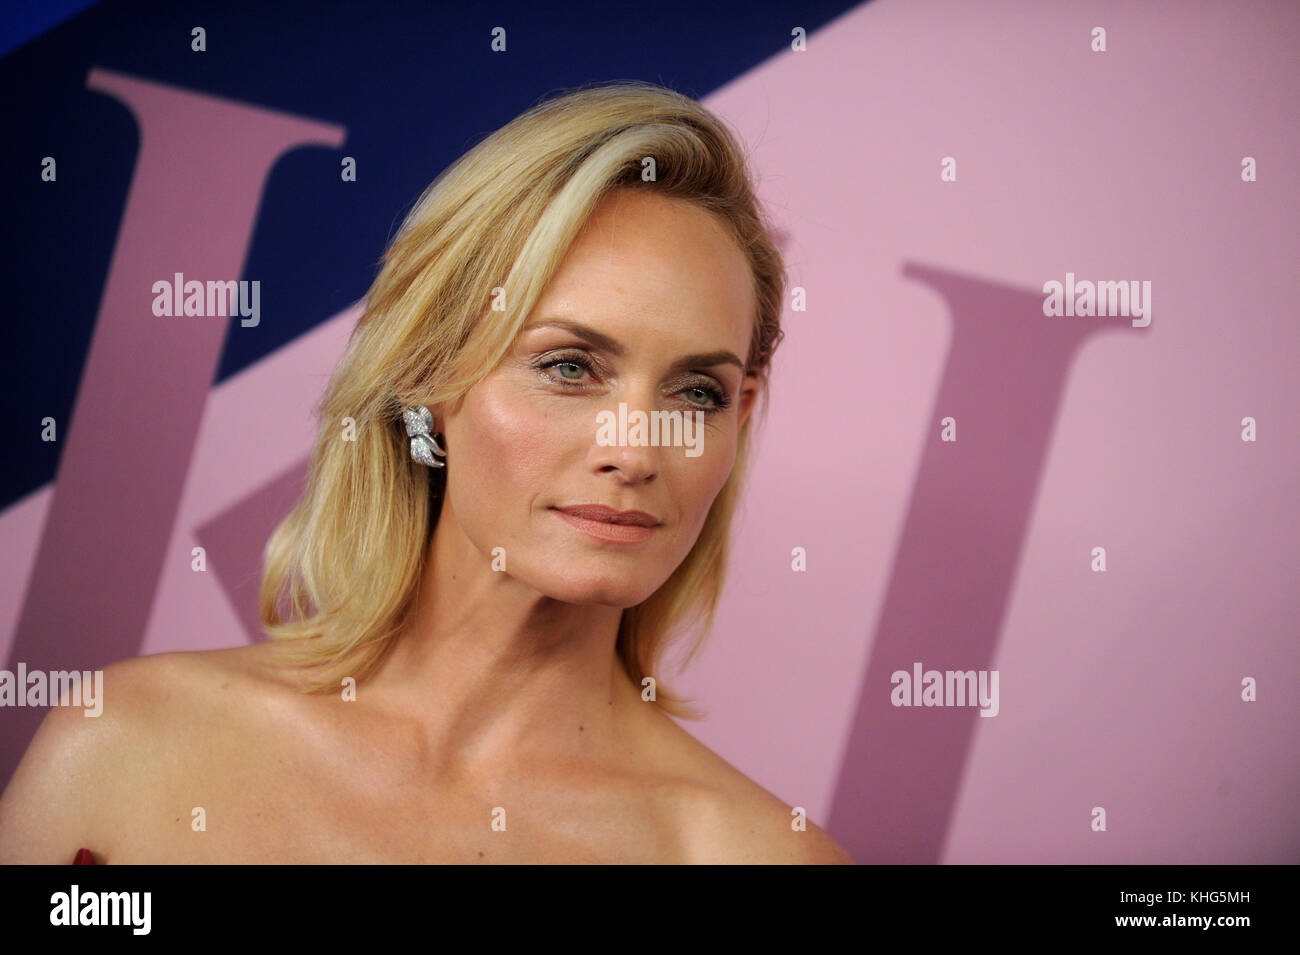 amber valletta stock photos amber valletta stock images. Black Bedroom Furniture Sets. Home Design Ideas